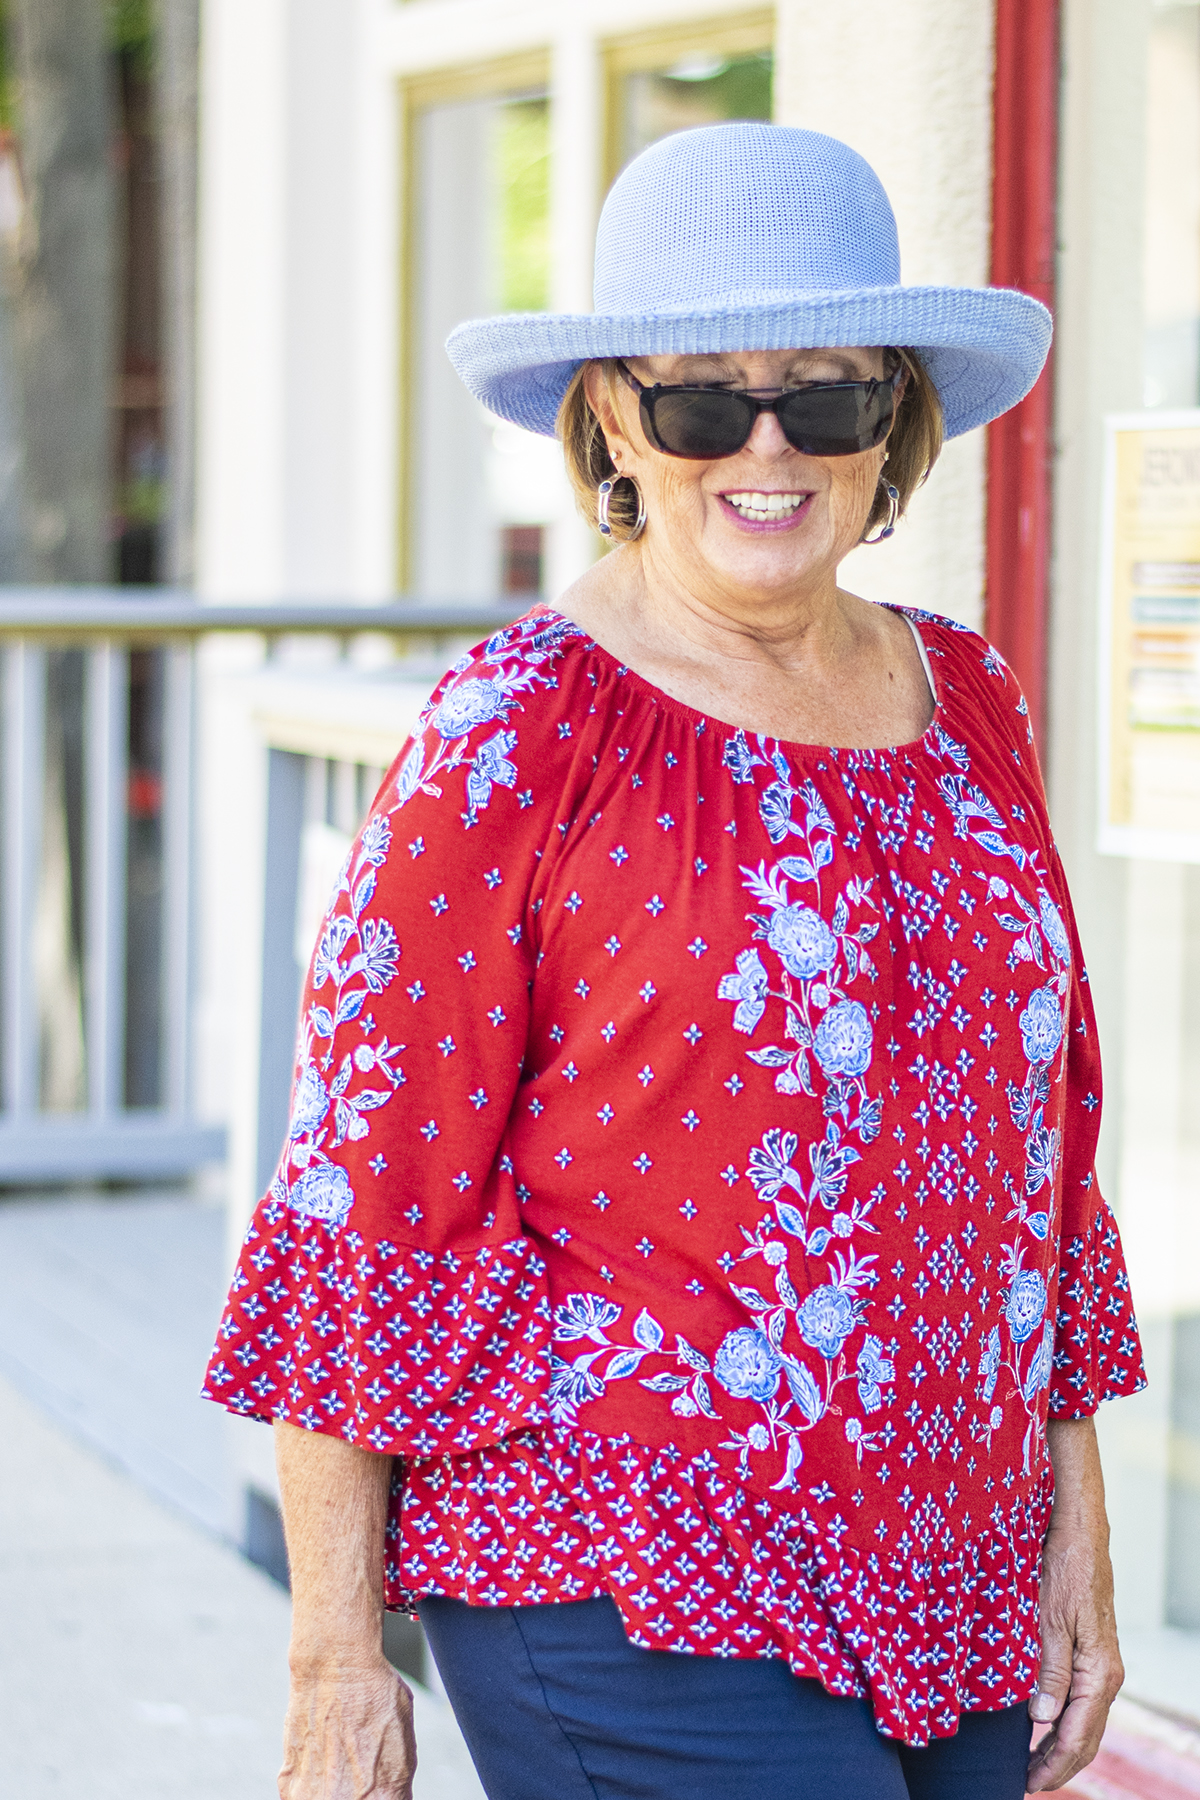 Showcasing Road Trip Outfits In The Summer For Women Over 60